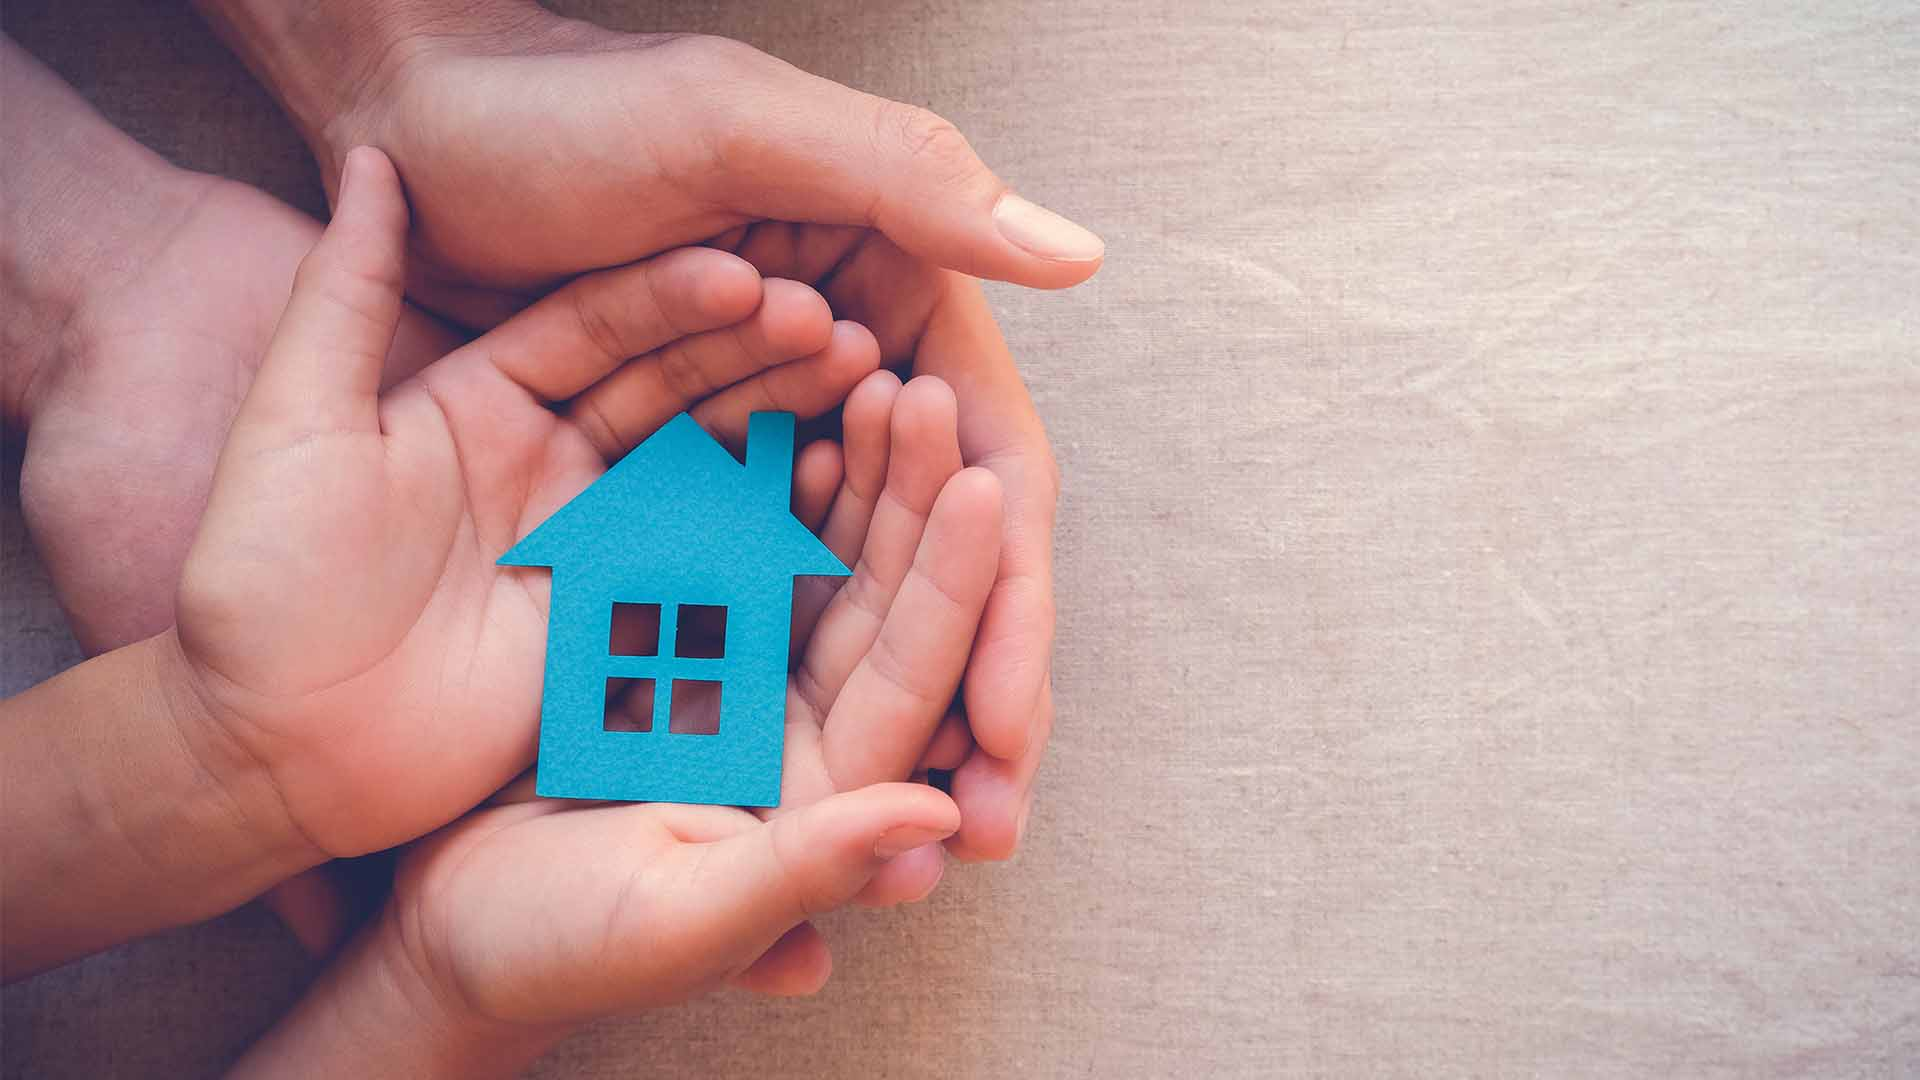 This Year Mumbai Region Gets Over 7000 MHADA Houses On Offer